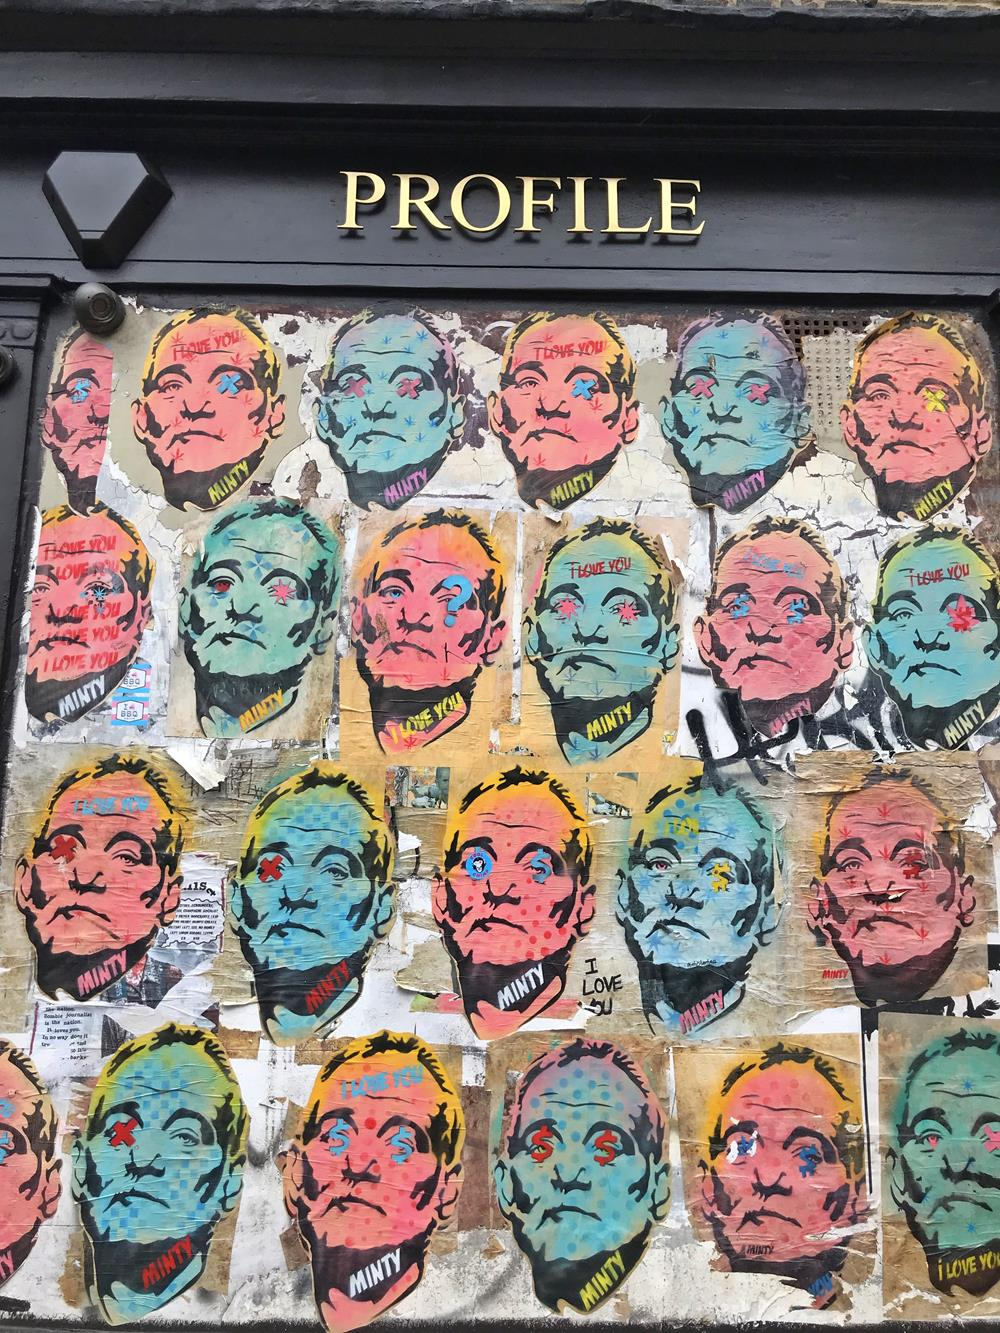 Multiple paste up images by Minty on the shop front of Profile in Brighton